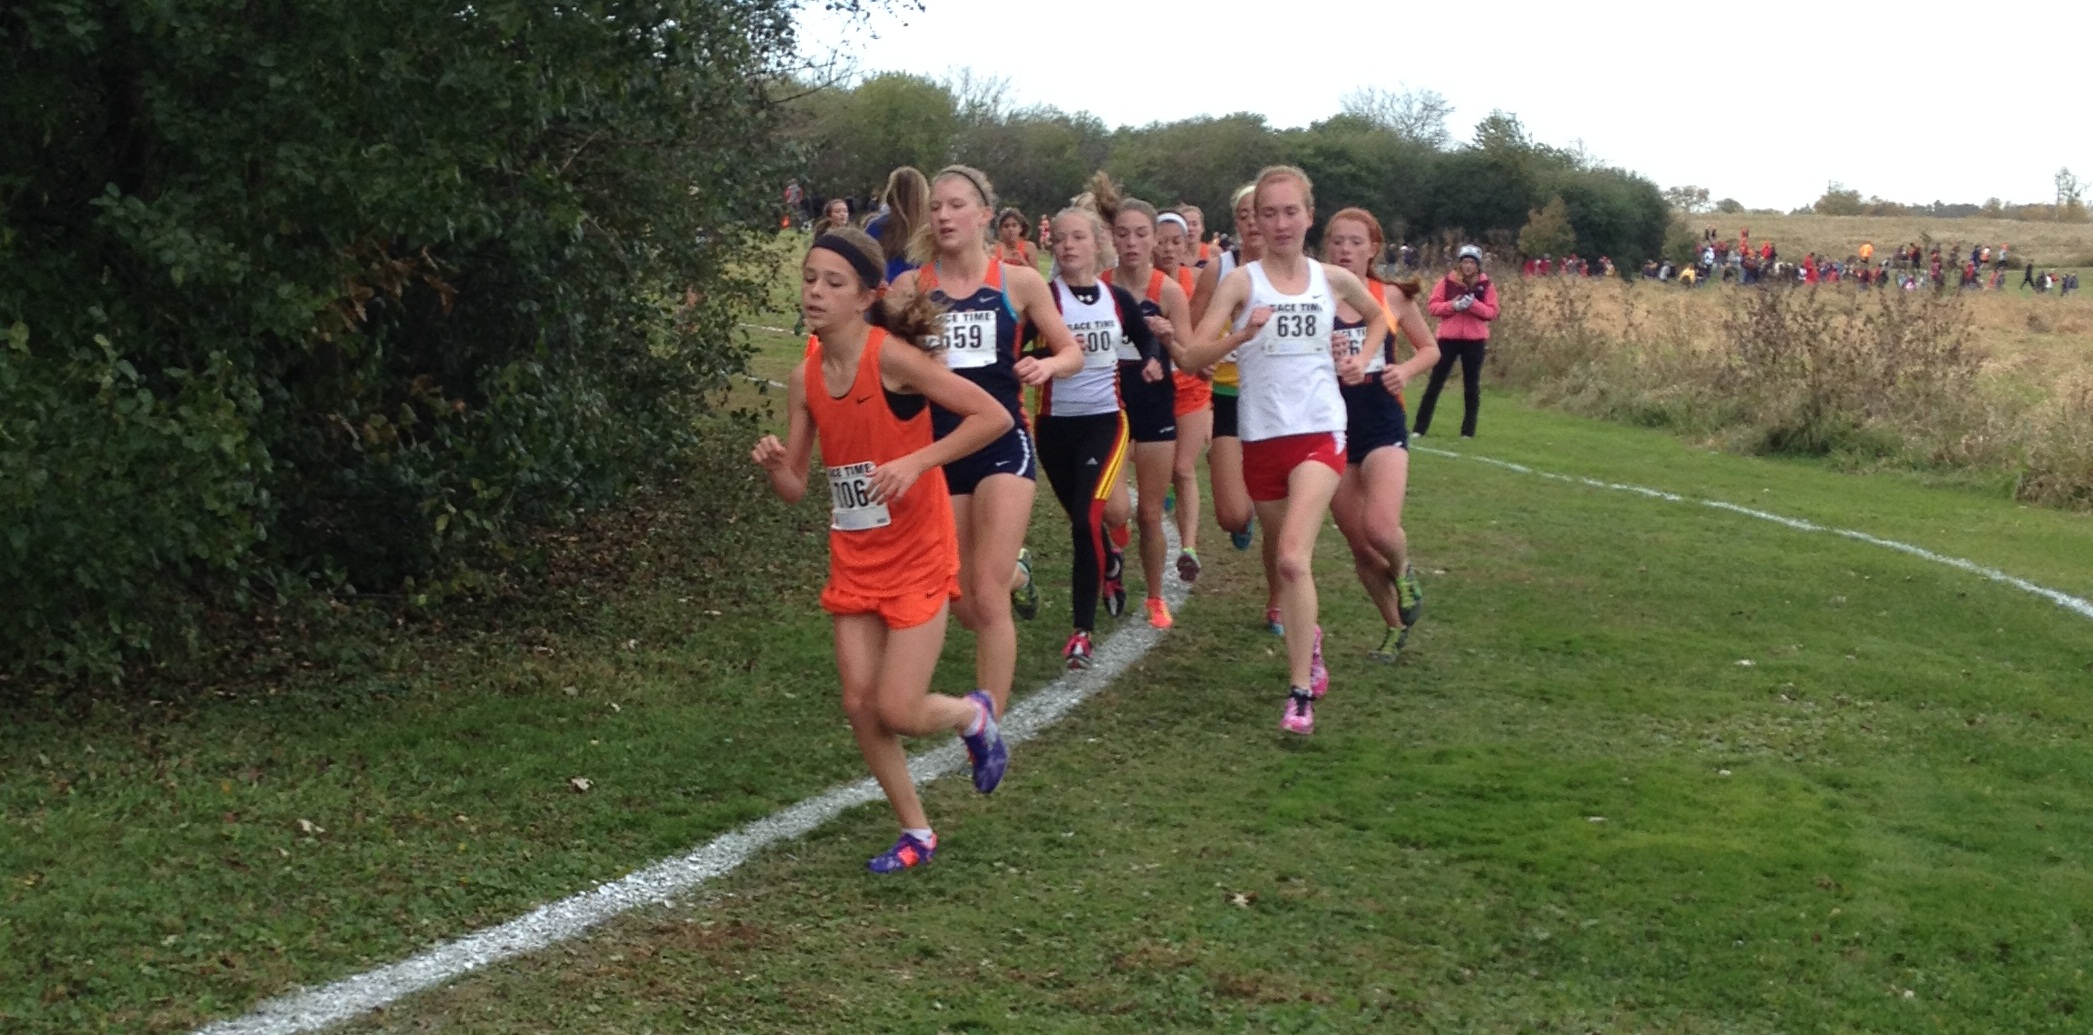 IHSA Regional Championship Meet Results Posted